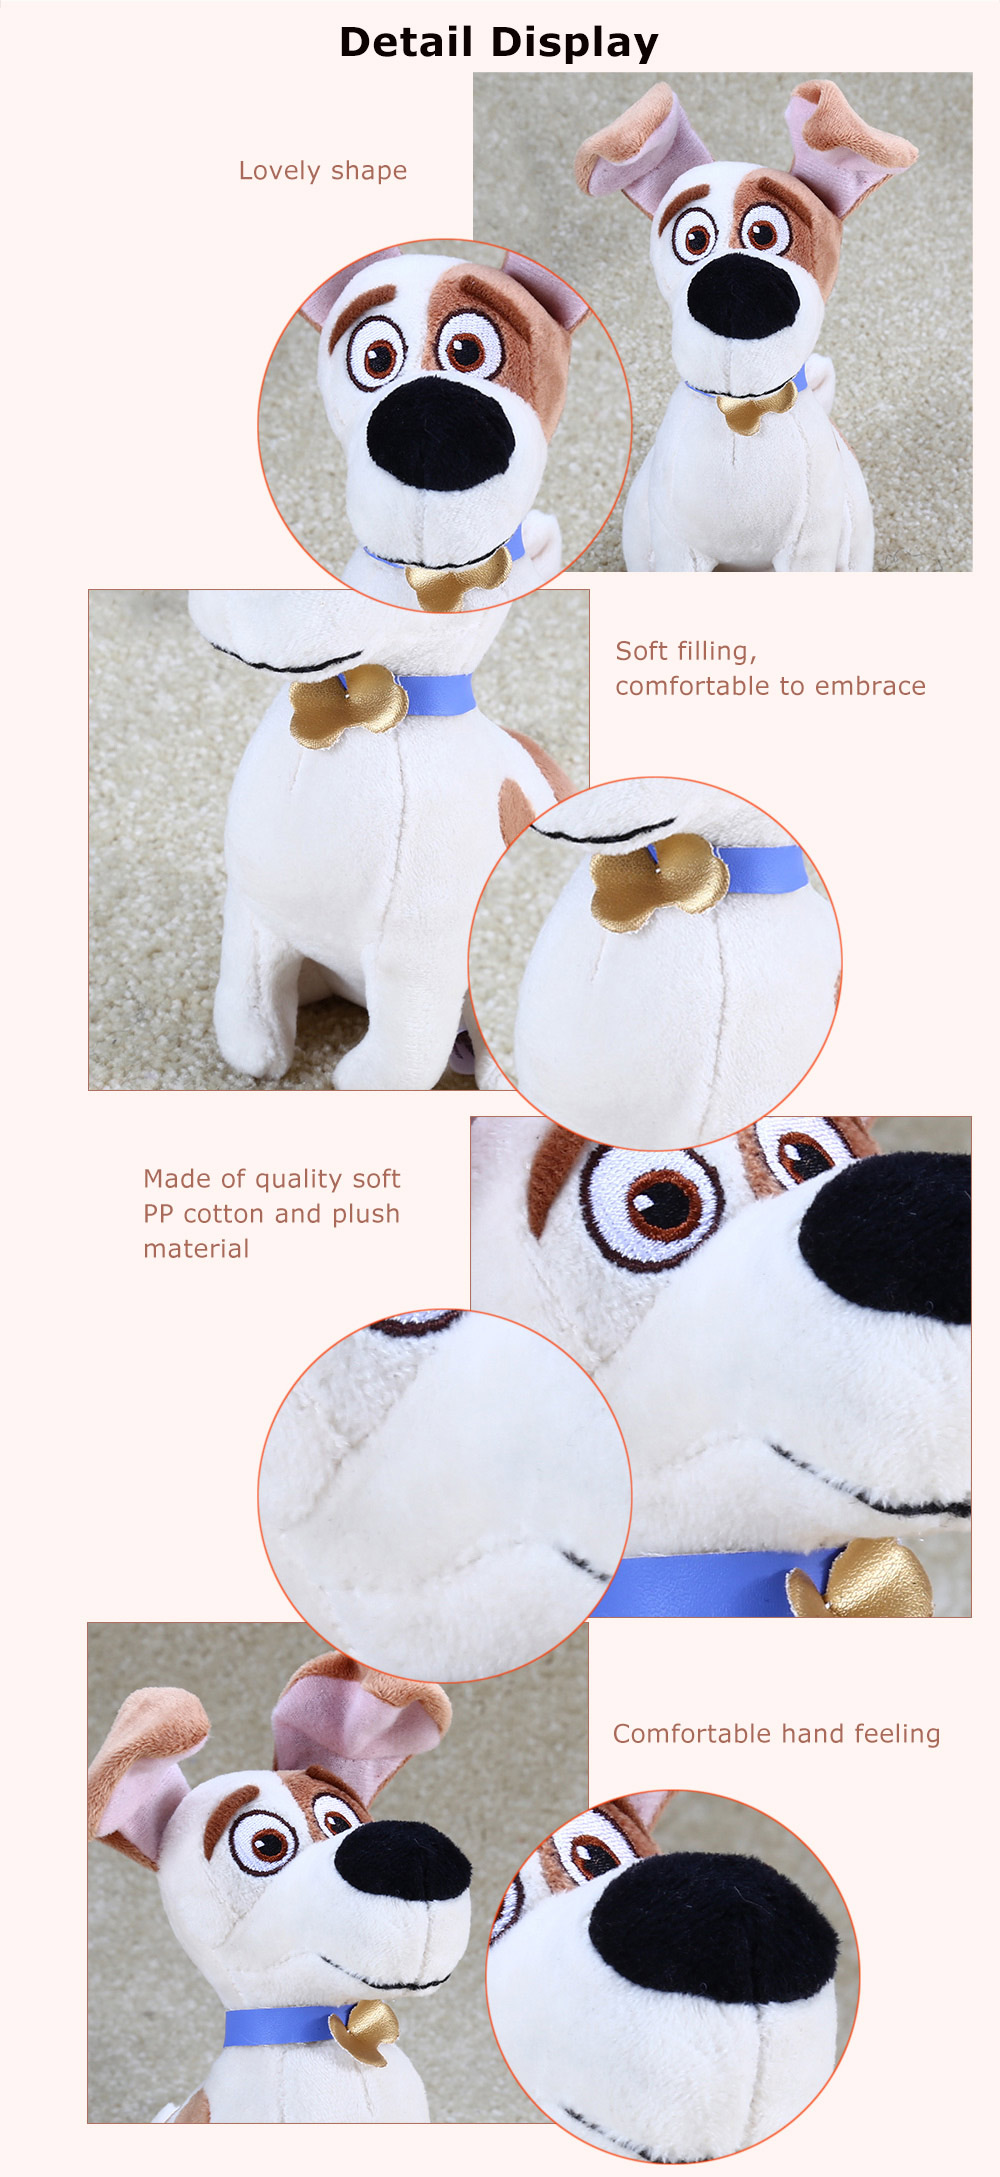 7.8 inch Anime Figure Style Plush Toy with Sling Stuffed Doll Decoration Gift